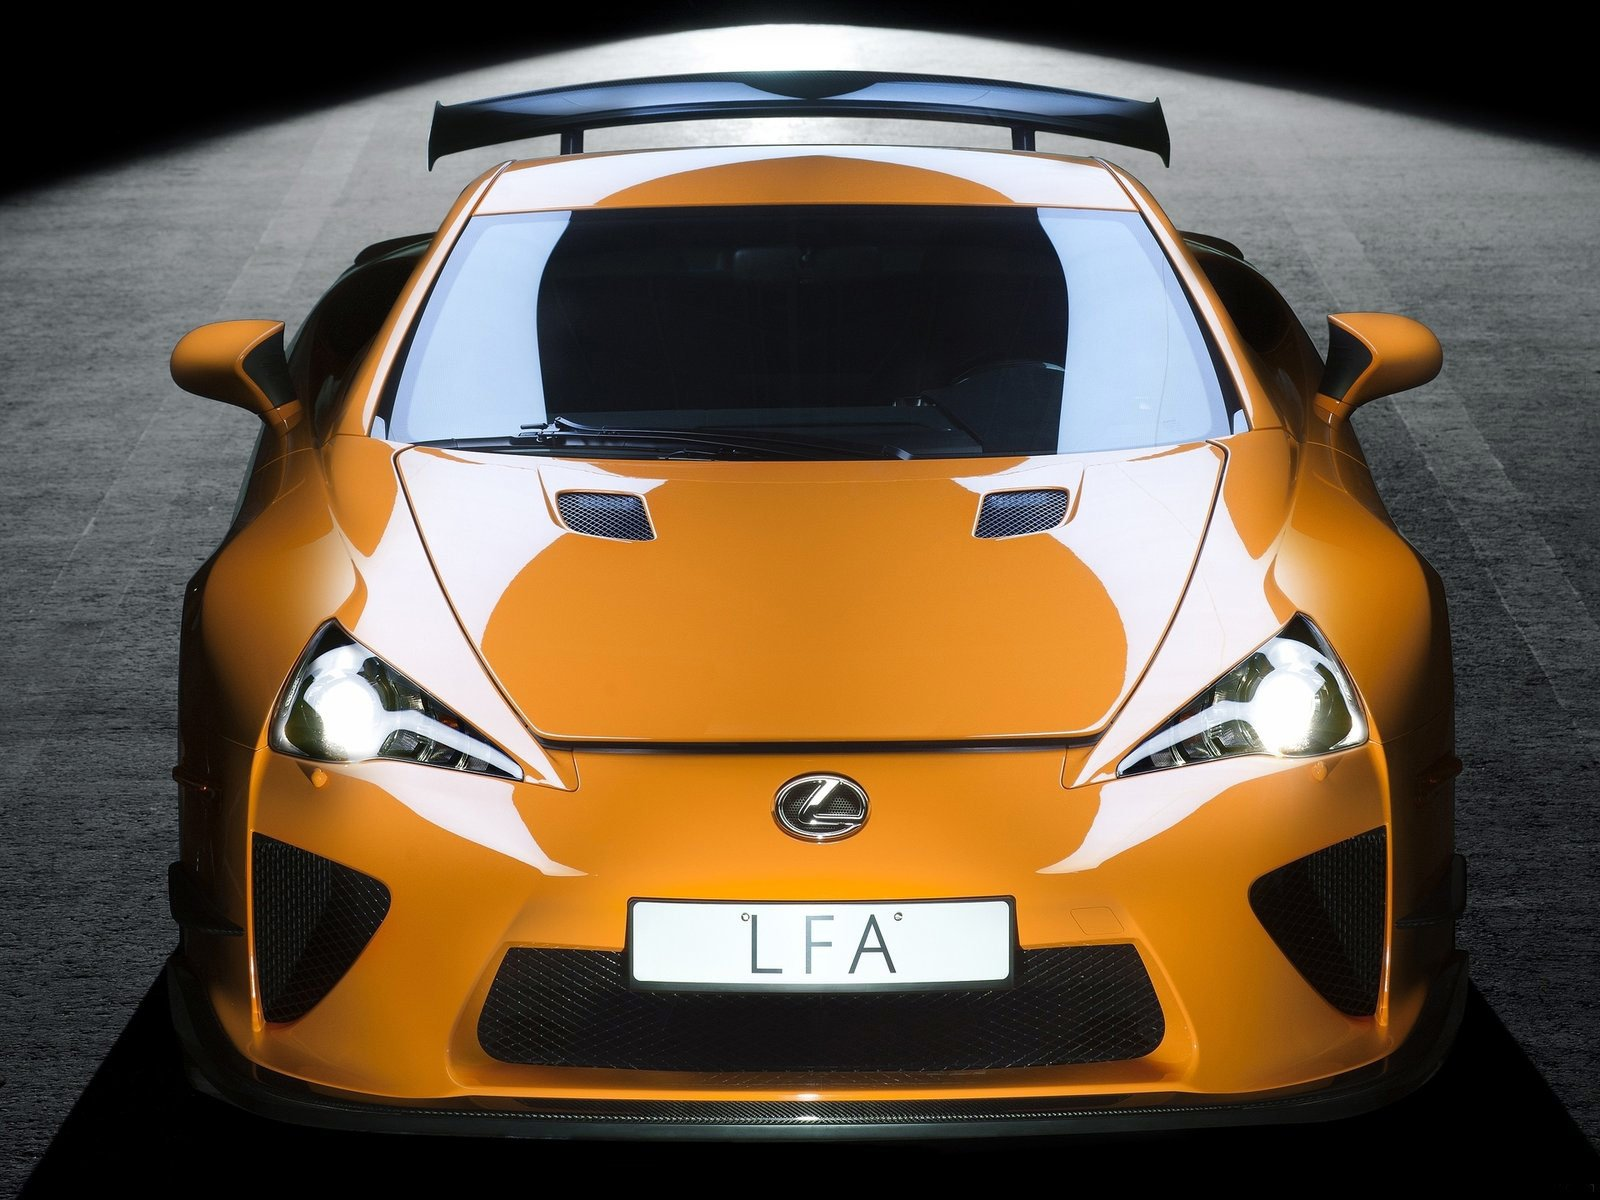 Latest Lexus Lfa Nurburgring Package Photos 2012 Accident Lawyers Free Download